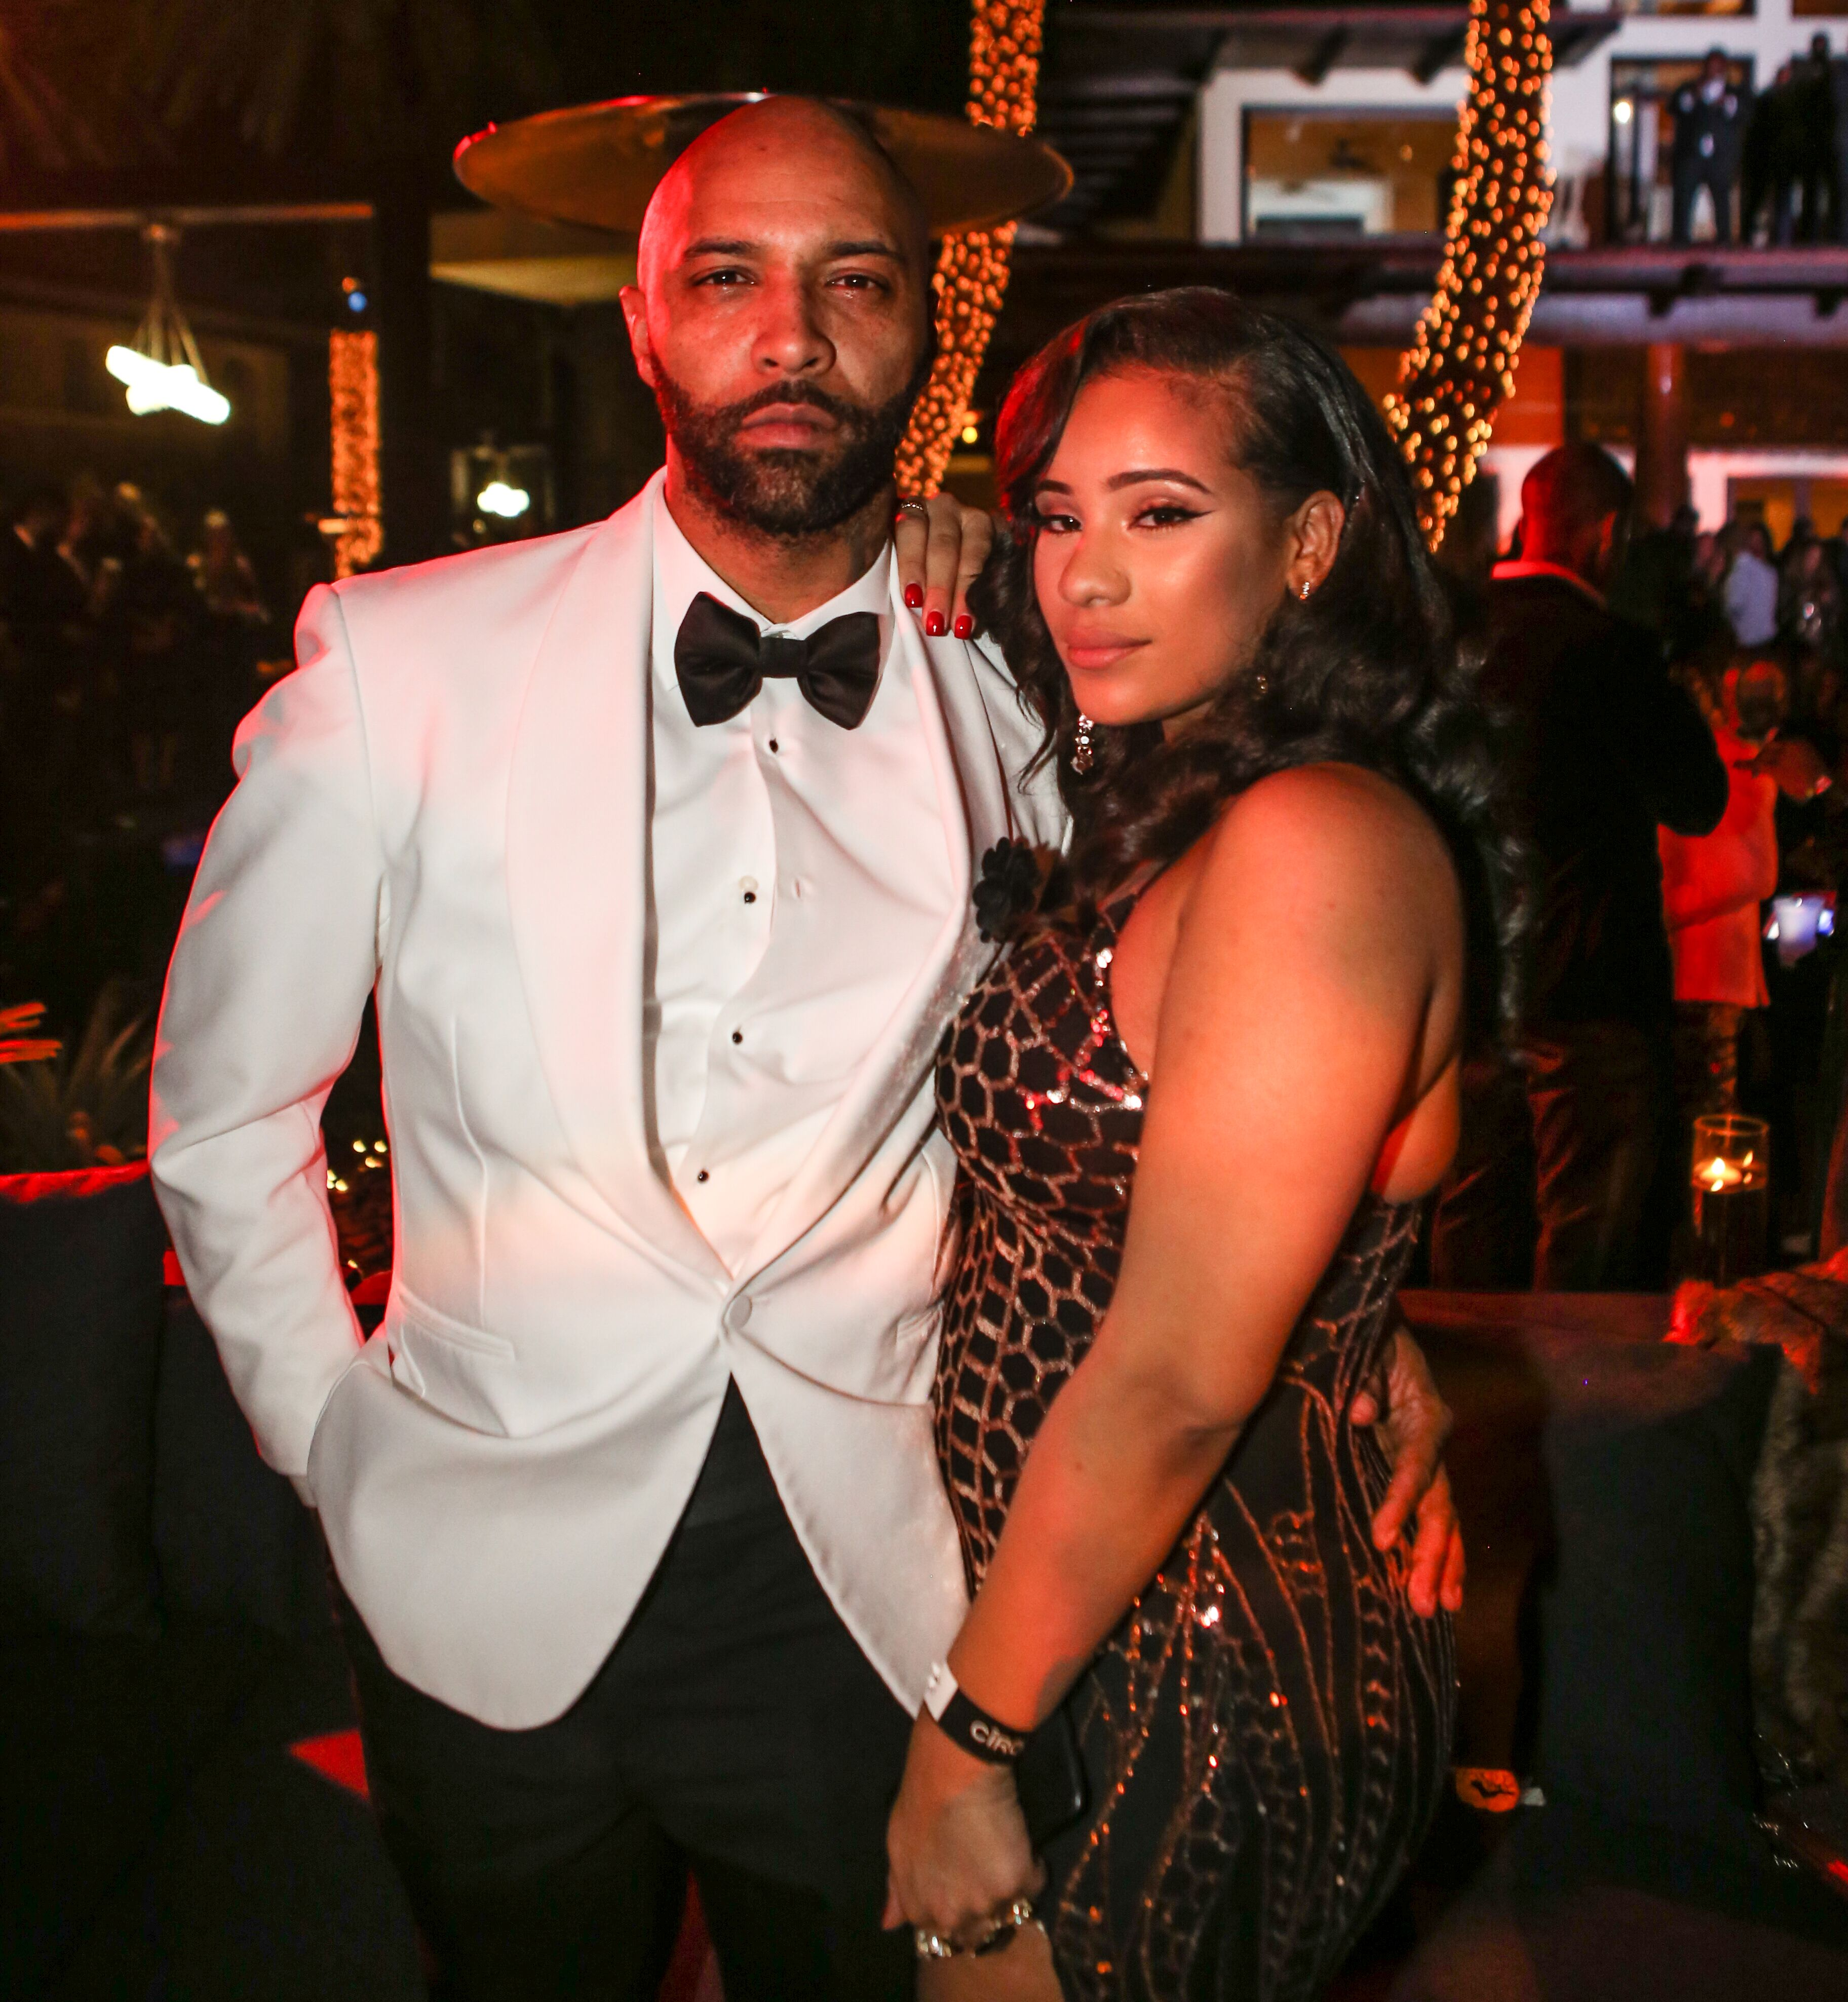 Cyn Santana and Joe Budden before their May 2019 breakup/ Source: Getty Images